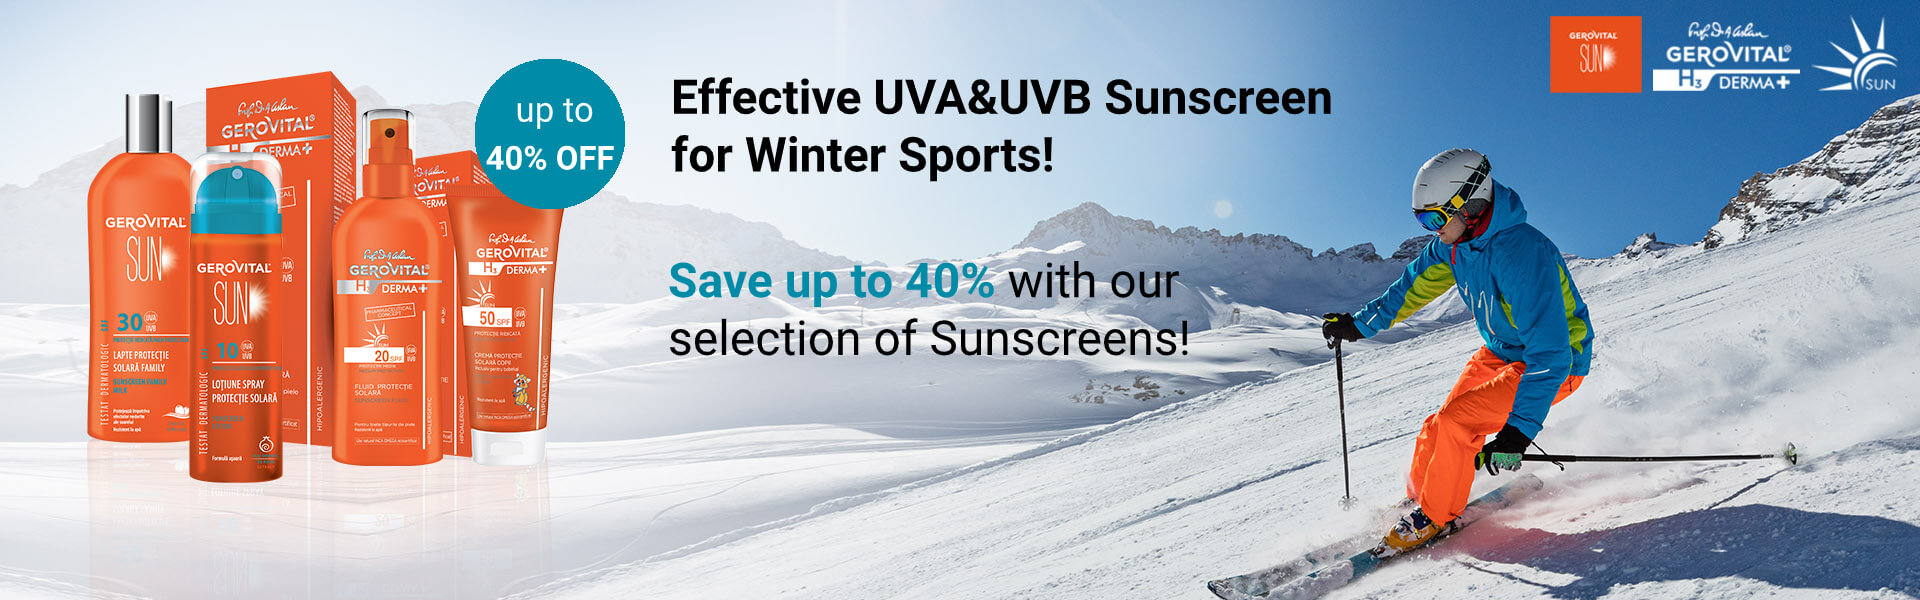 Effective UVA&UVB Sunscreen for Winter Sports!